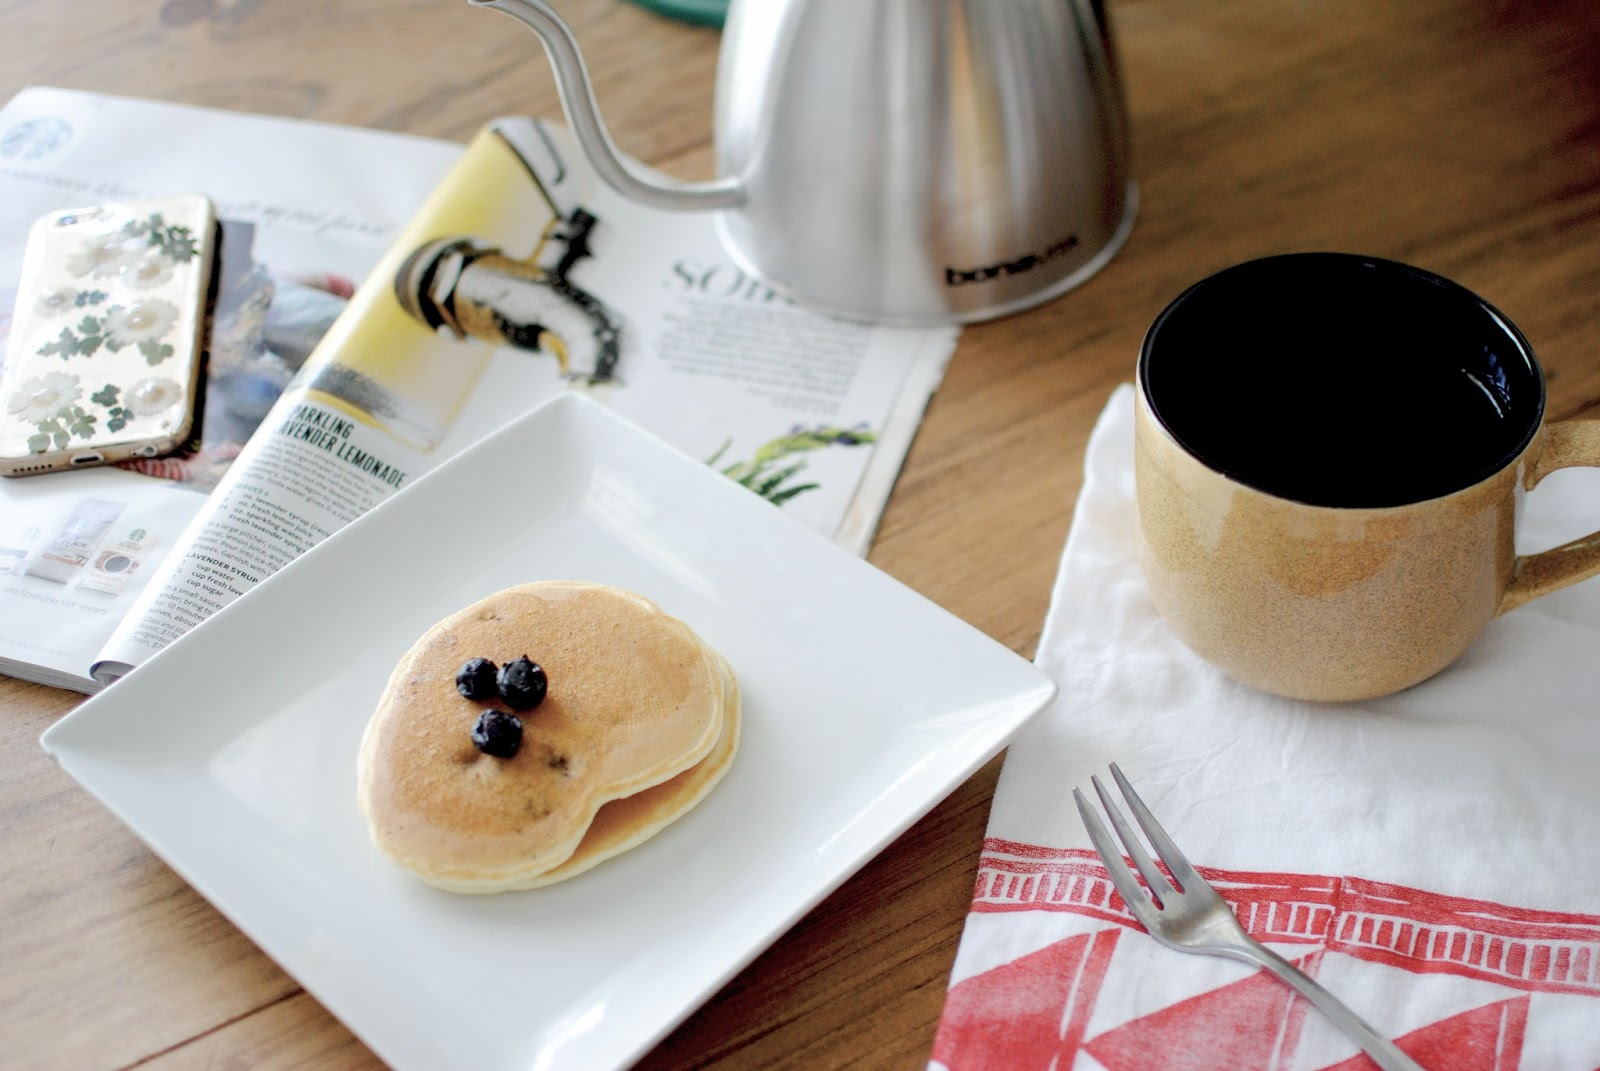 starbucks, new, coffee, review, kettle, mugs, pancakes, lemon, blueberry, recipe